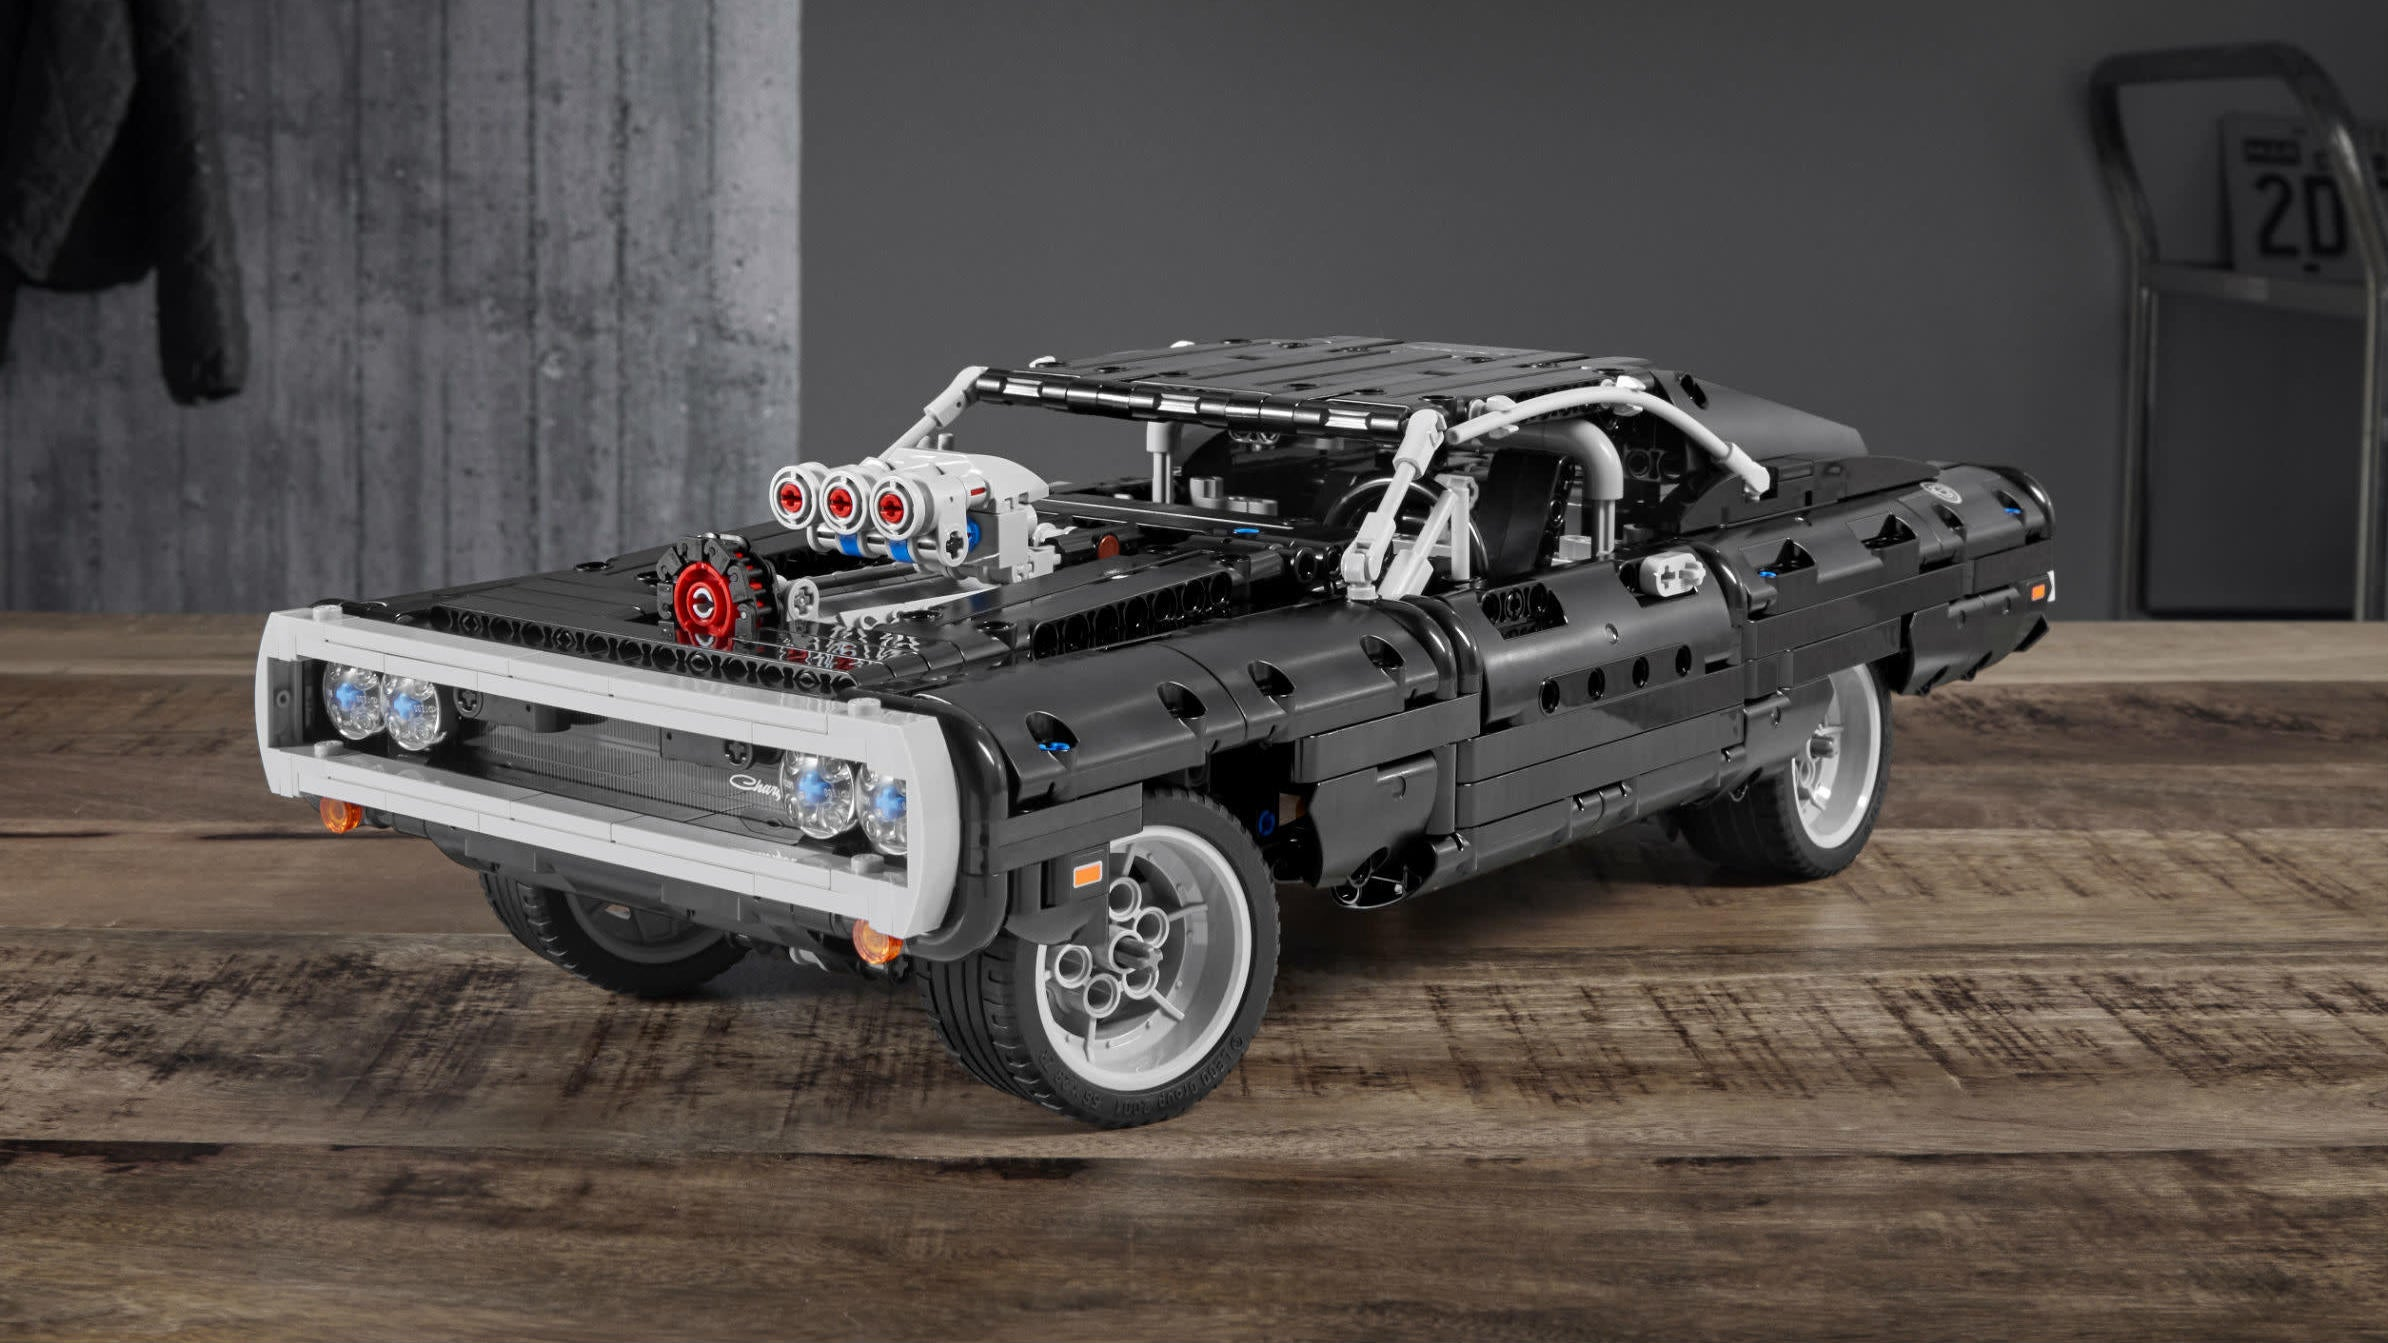 Fast And Furious Joins The Lego Family With Dom's Dodge Charger